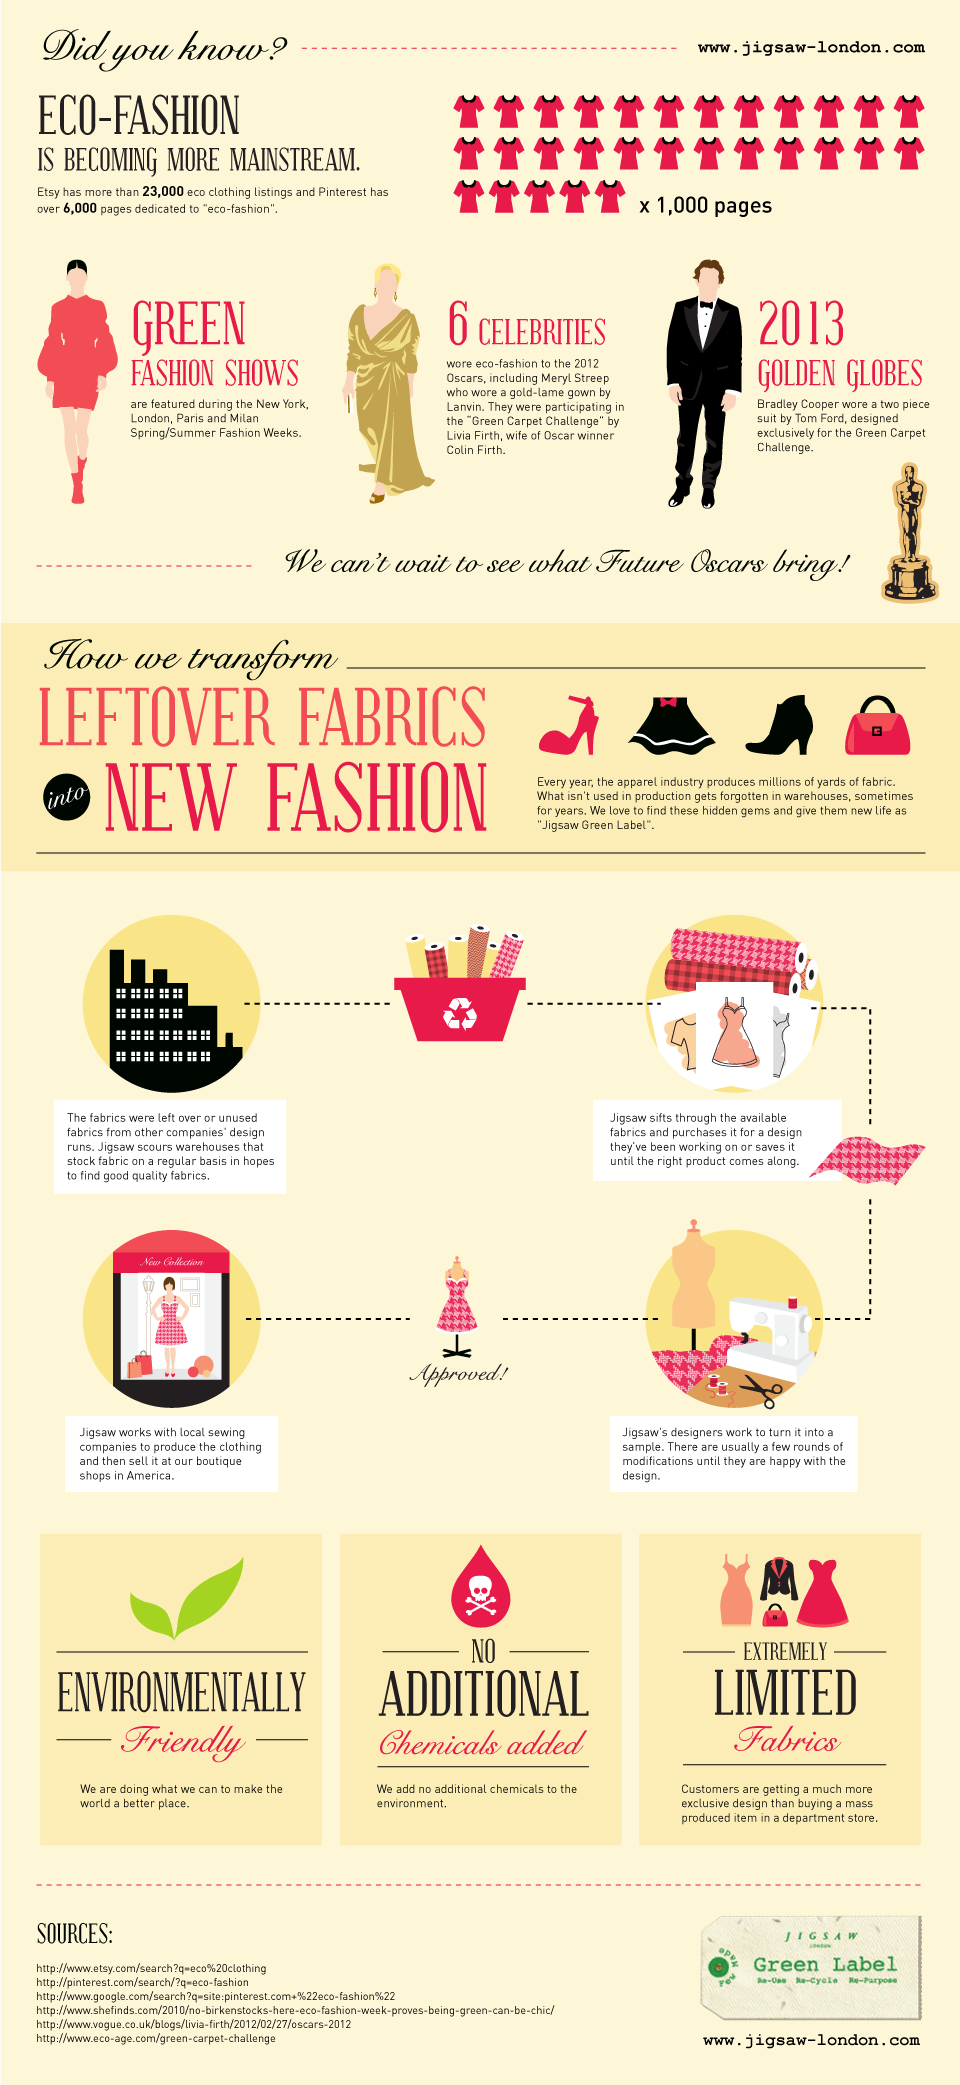 Eco Fashion is becoming more mainstream!